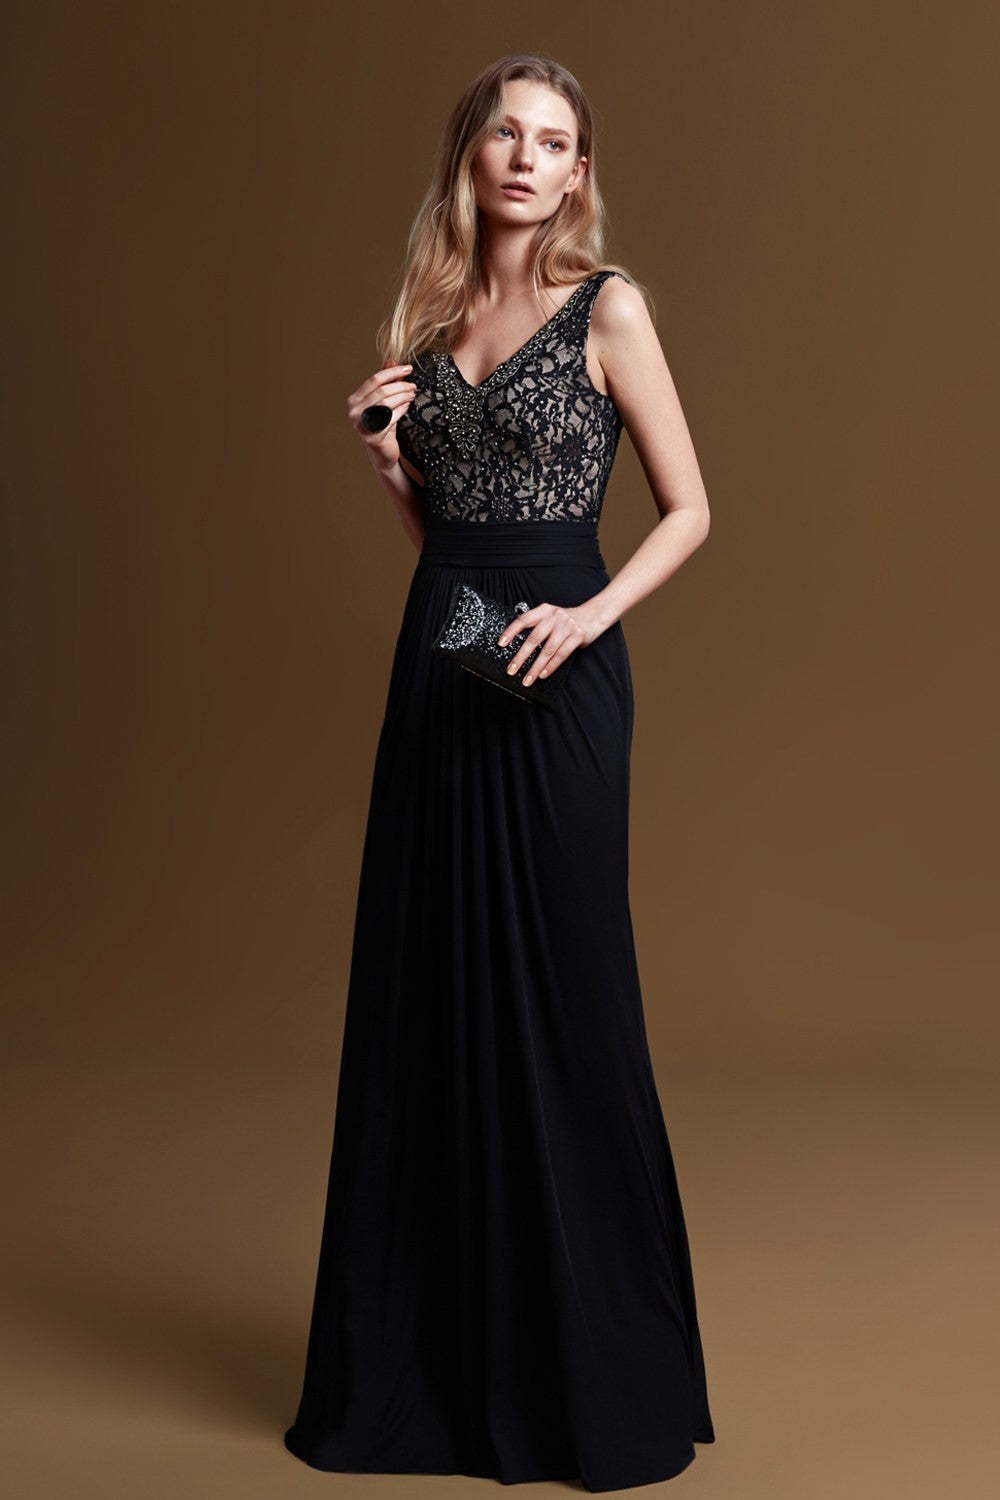 Beaded V-neck Formal Dress-4xlwbm1056v5